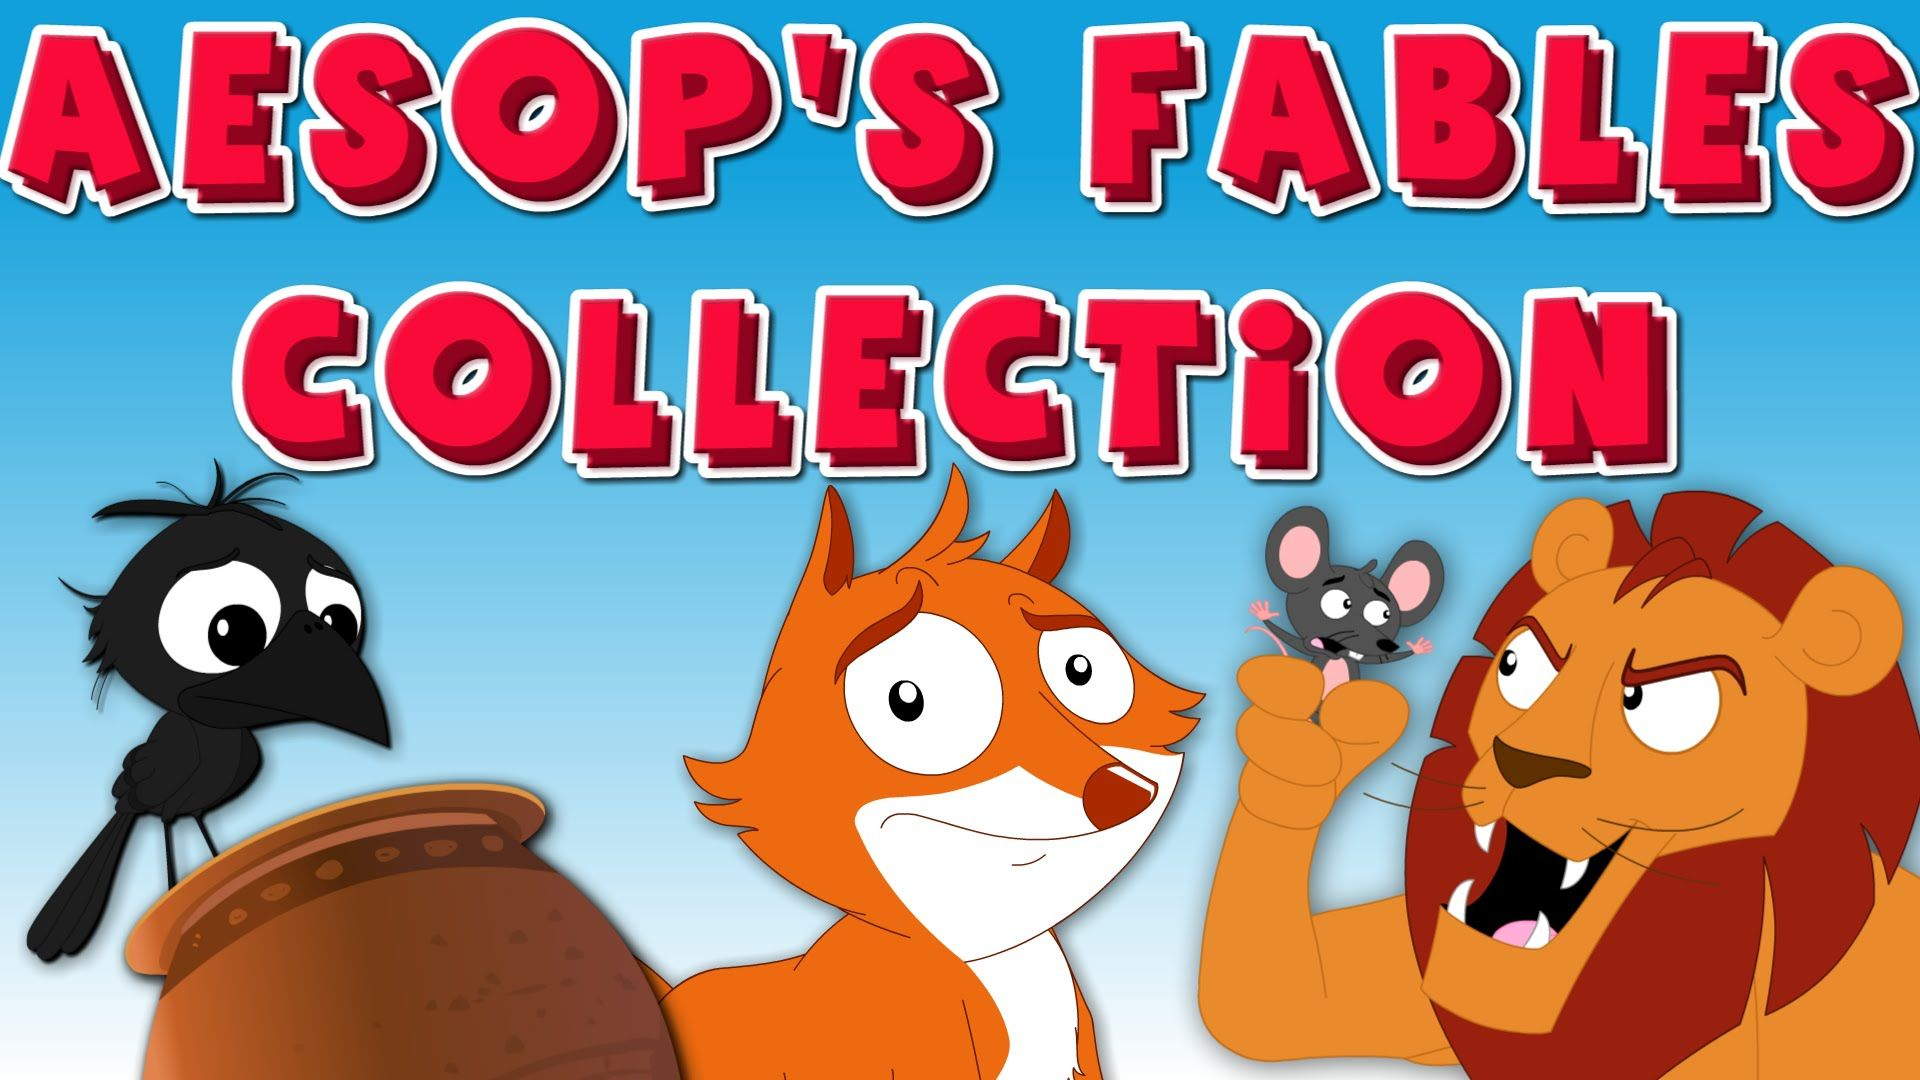 Presenting Aesop S Fables For Kids A Collection Of The Most Popular Aesop S Fables And Kids